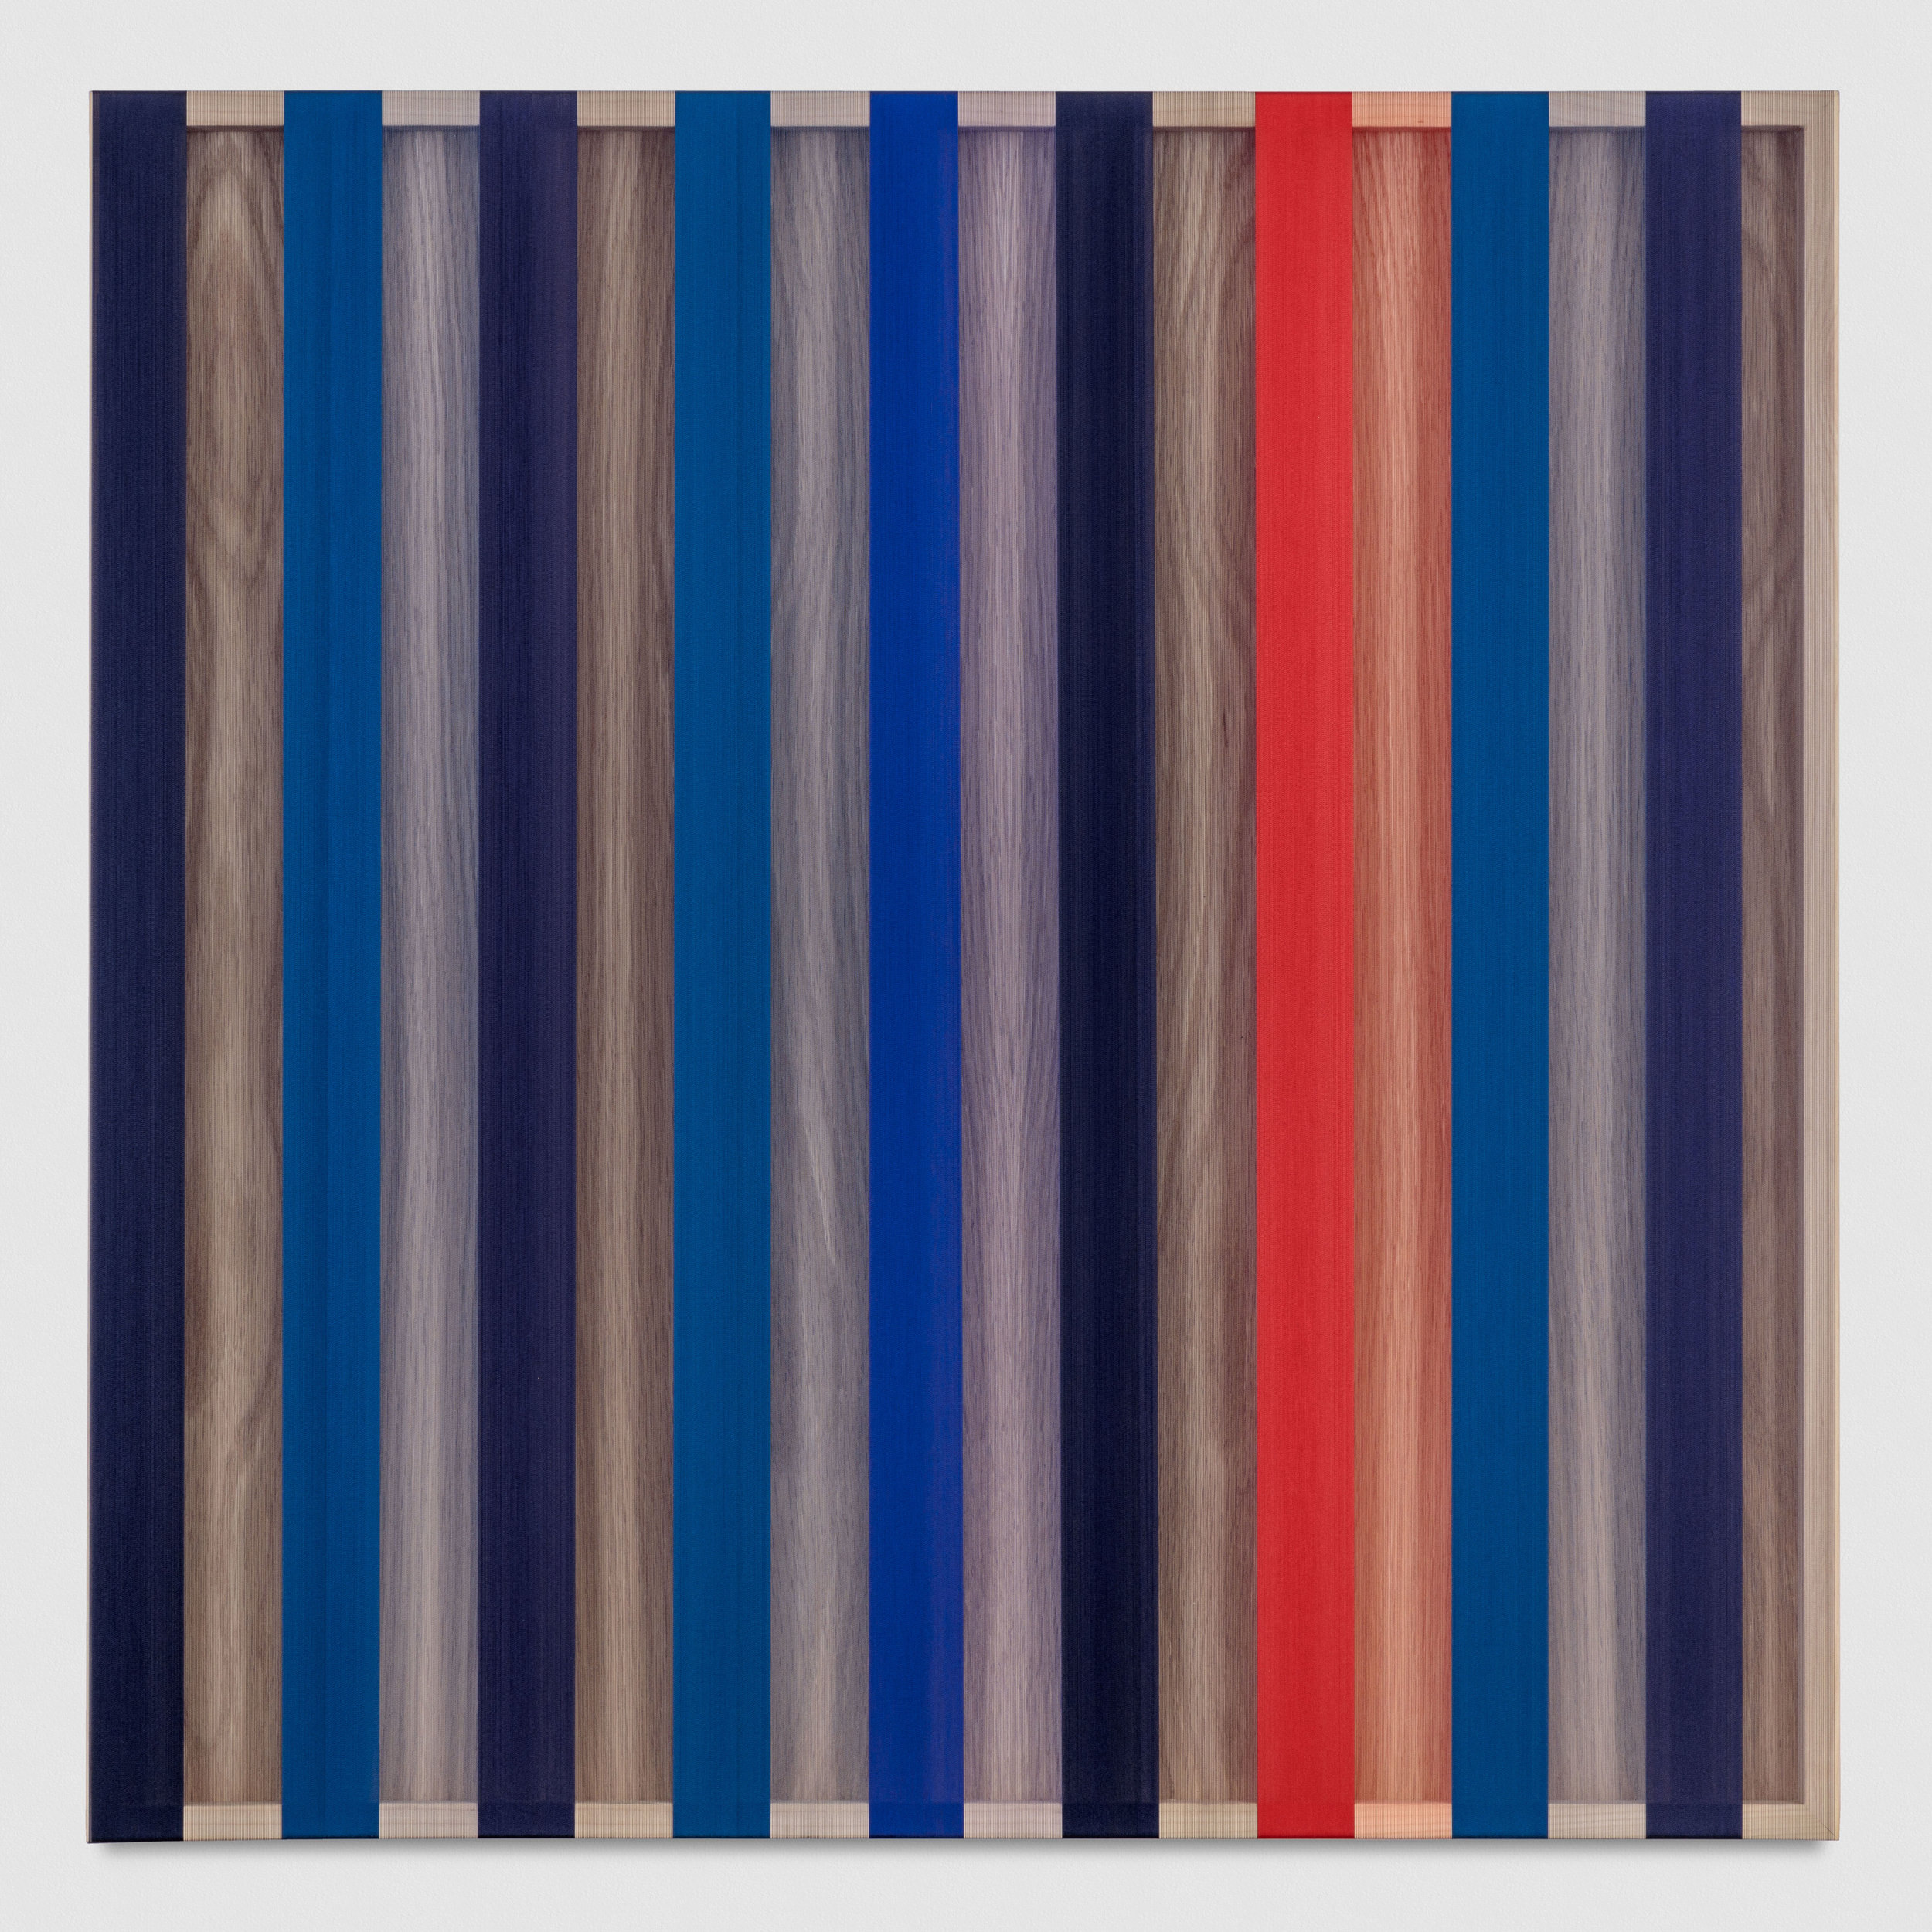 Untitled (Red and Blue banded hovering thread), 2017 single-strand rayon thread on vertical grain oak 91,4 x 91,4 cm - 36 x 36 in